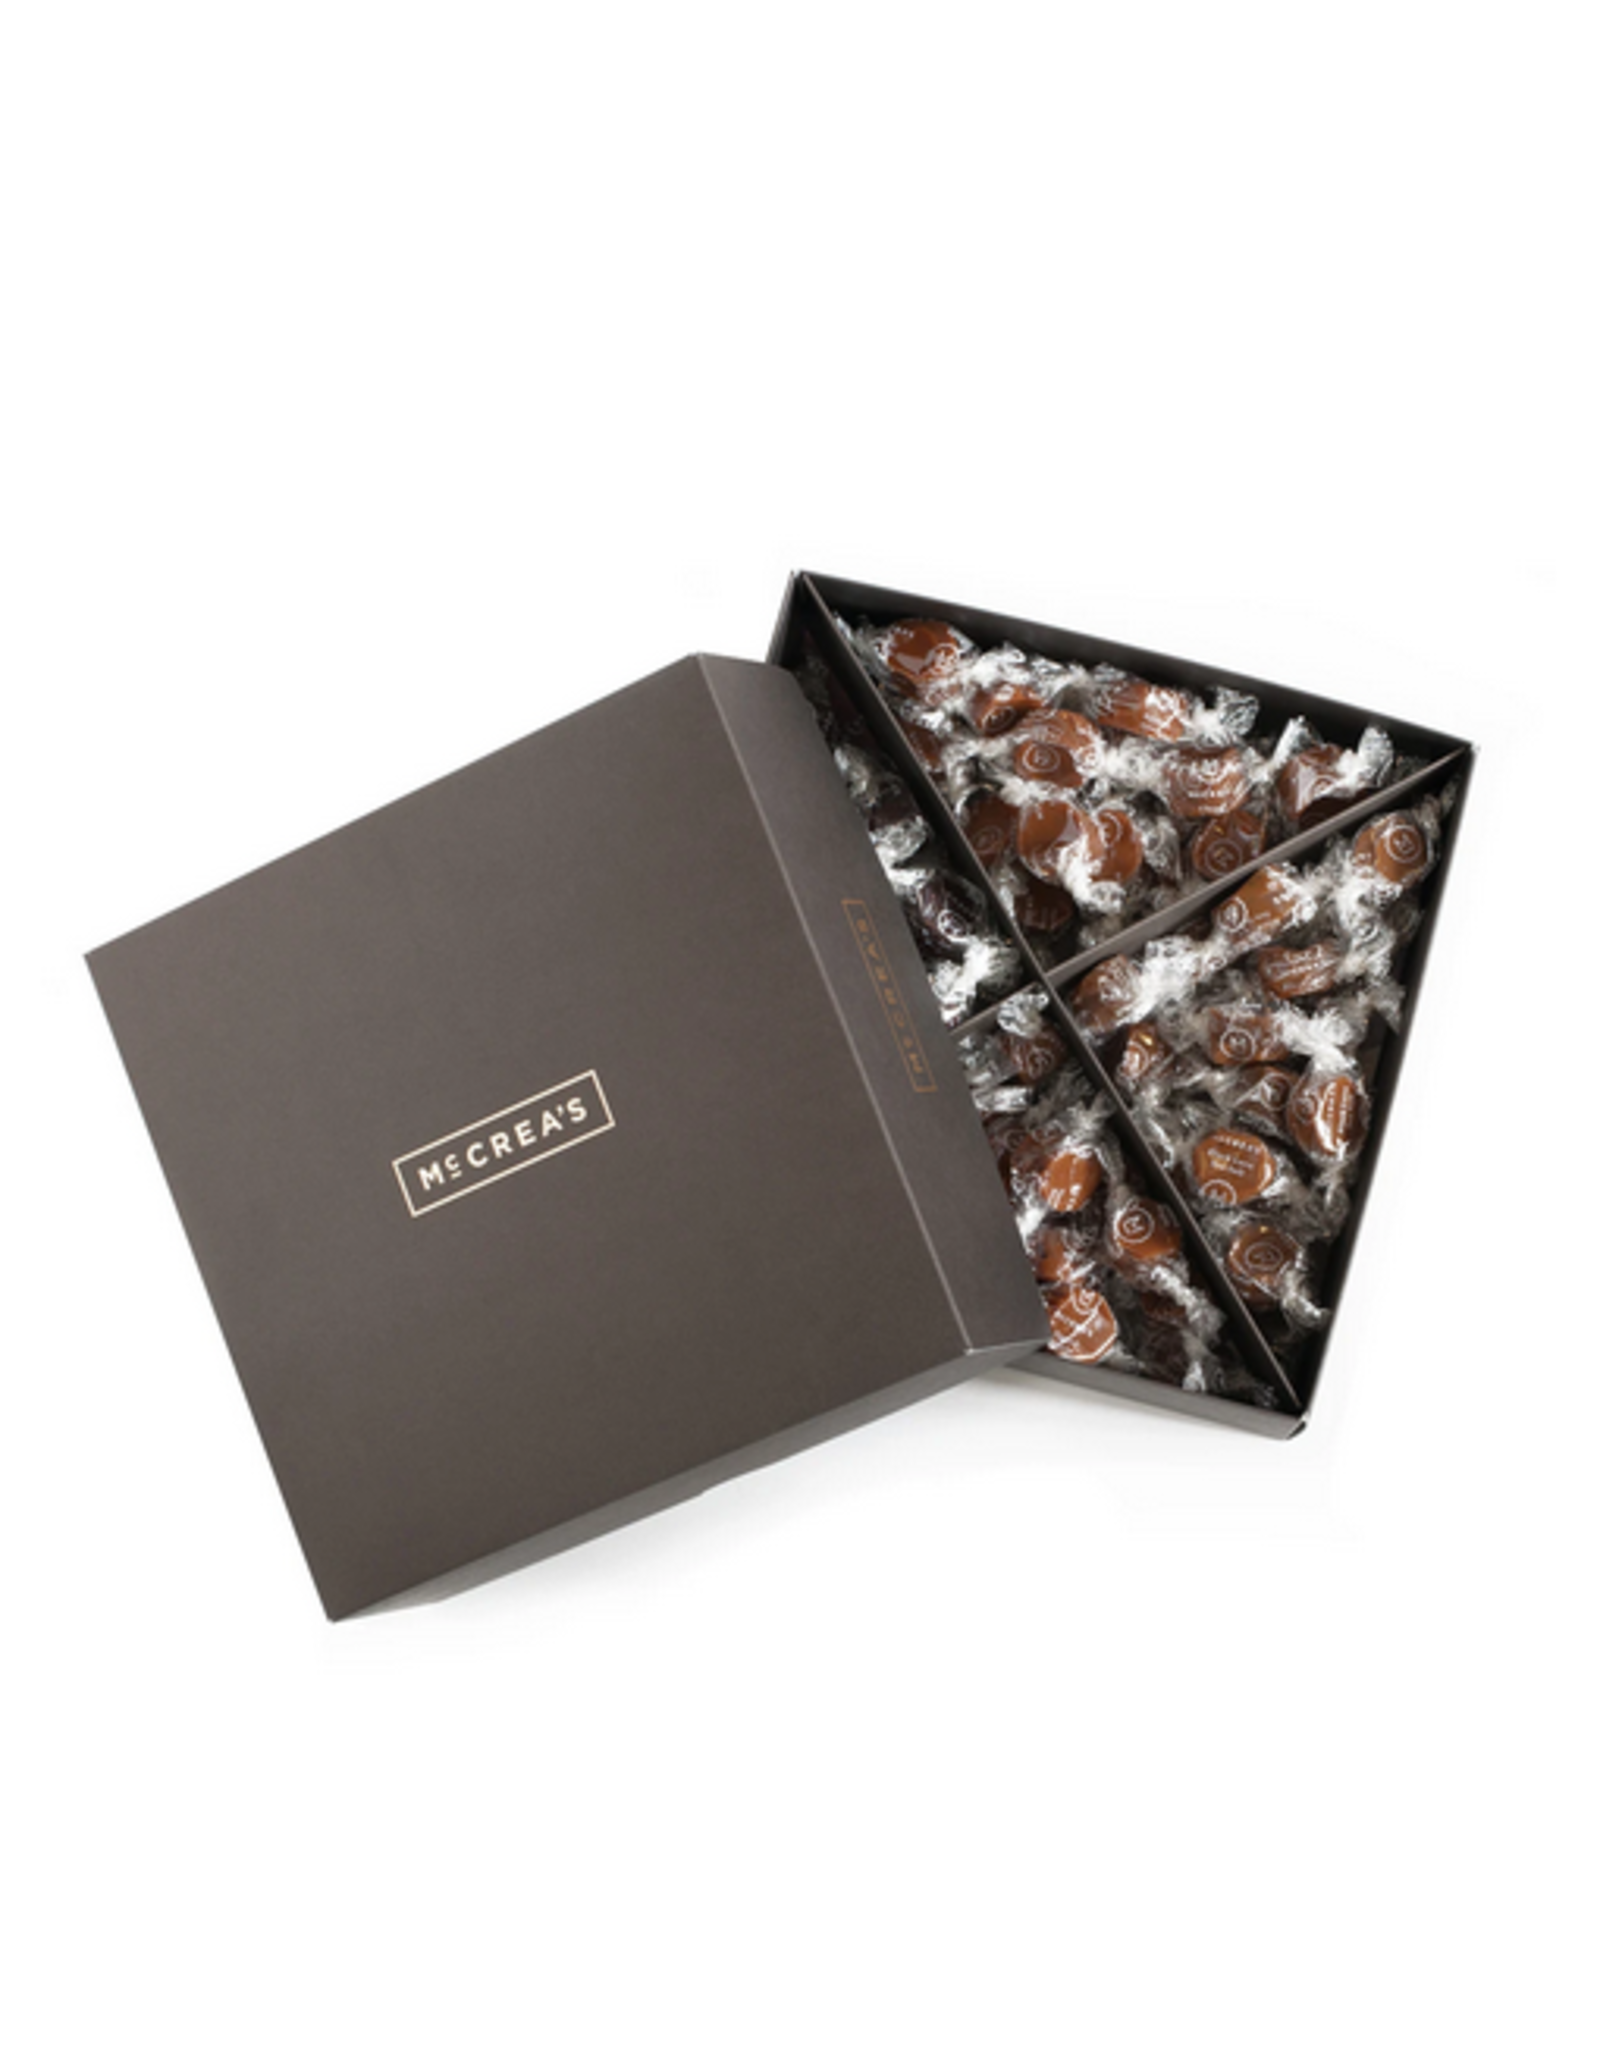 McCrea's Party Box of Caramels